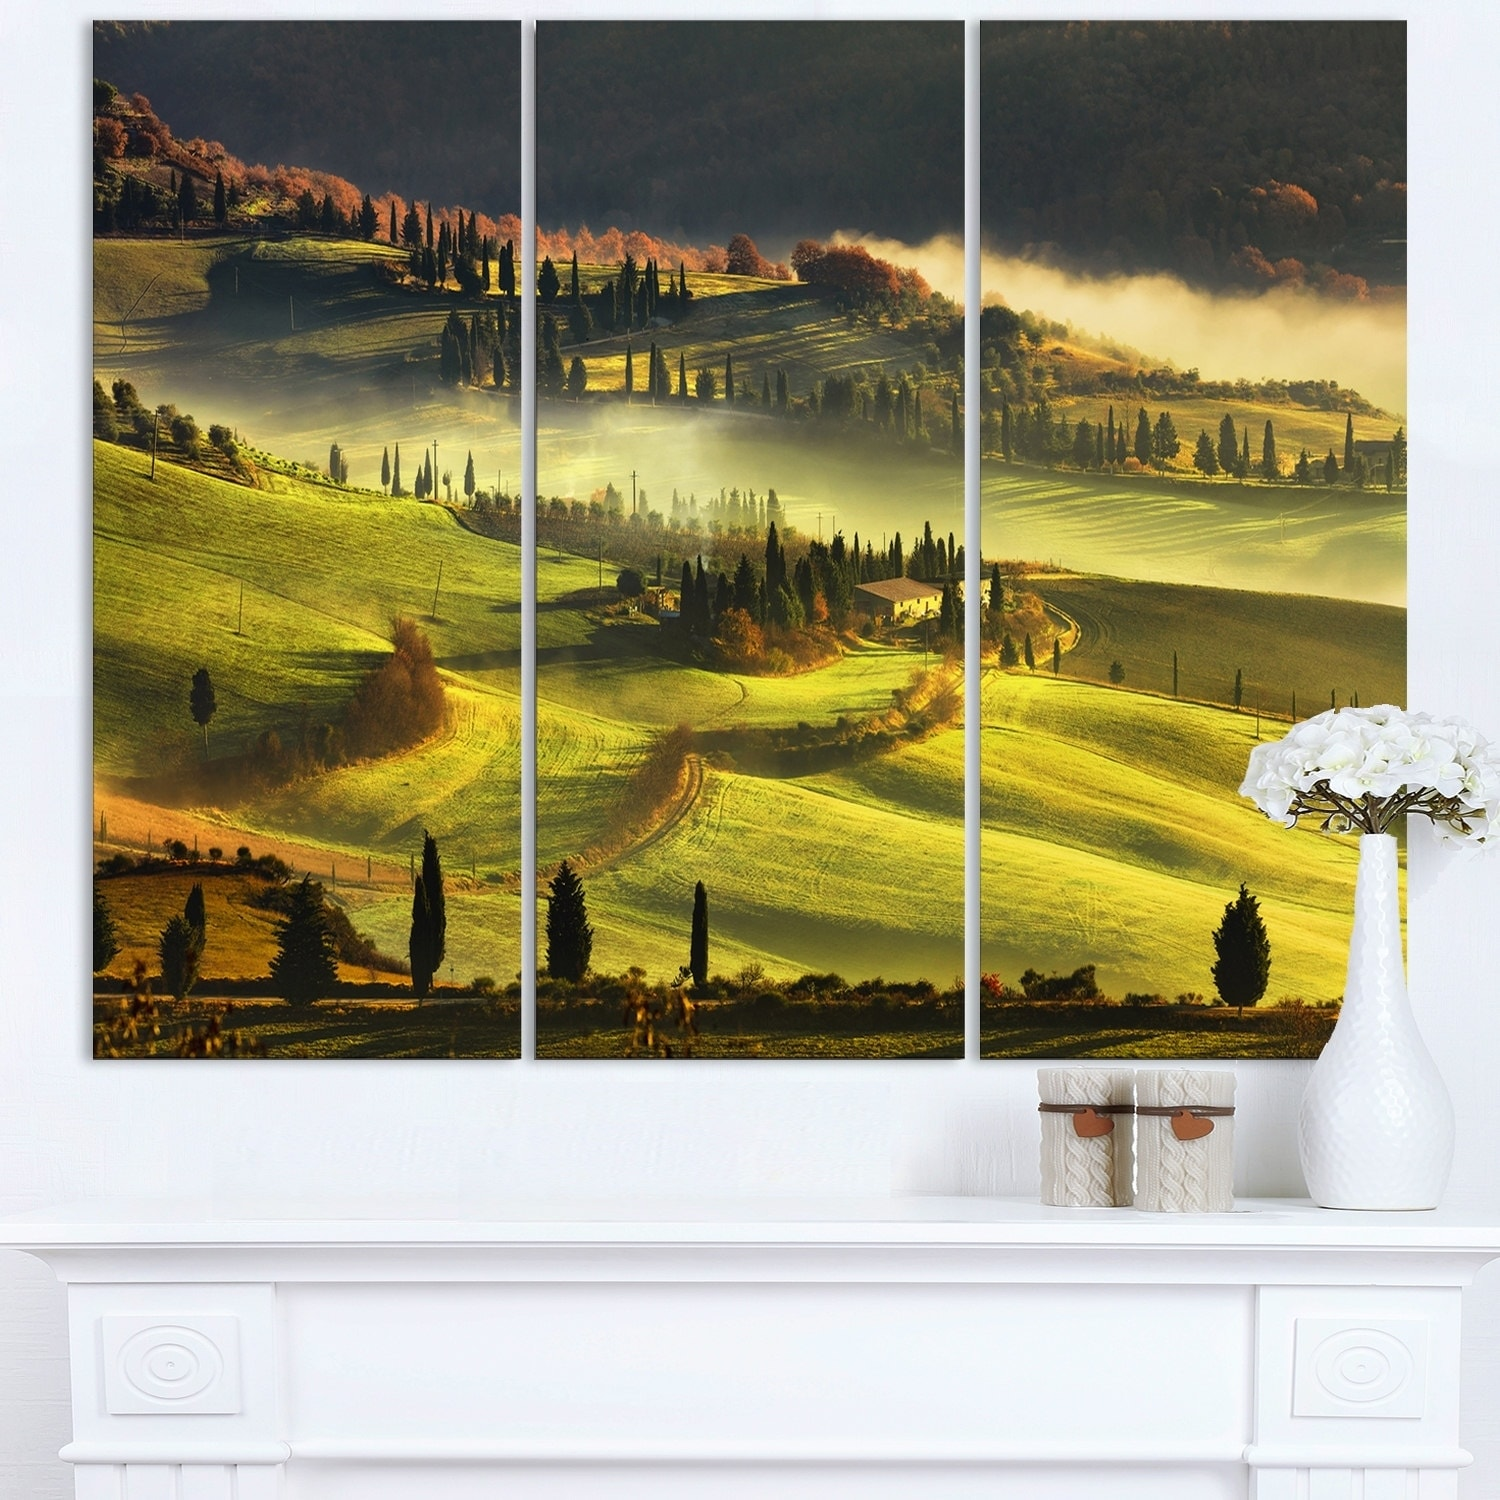 Comfortable Giant Fork Wall Decor Ideas - The Wall Art Decorations ...